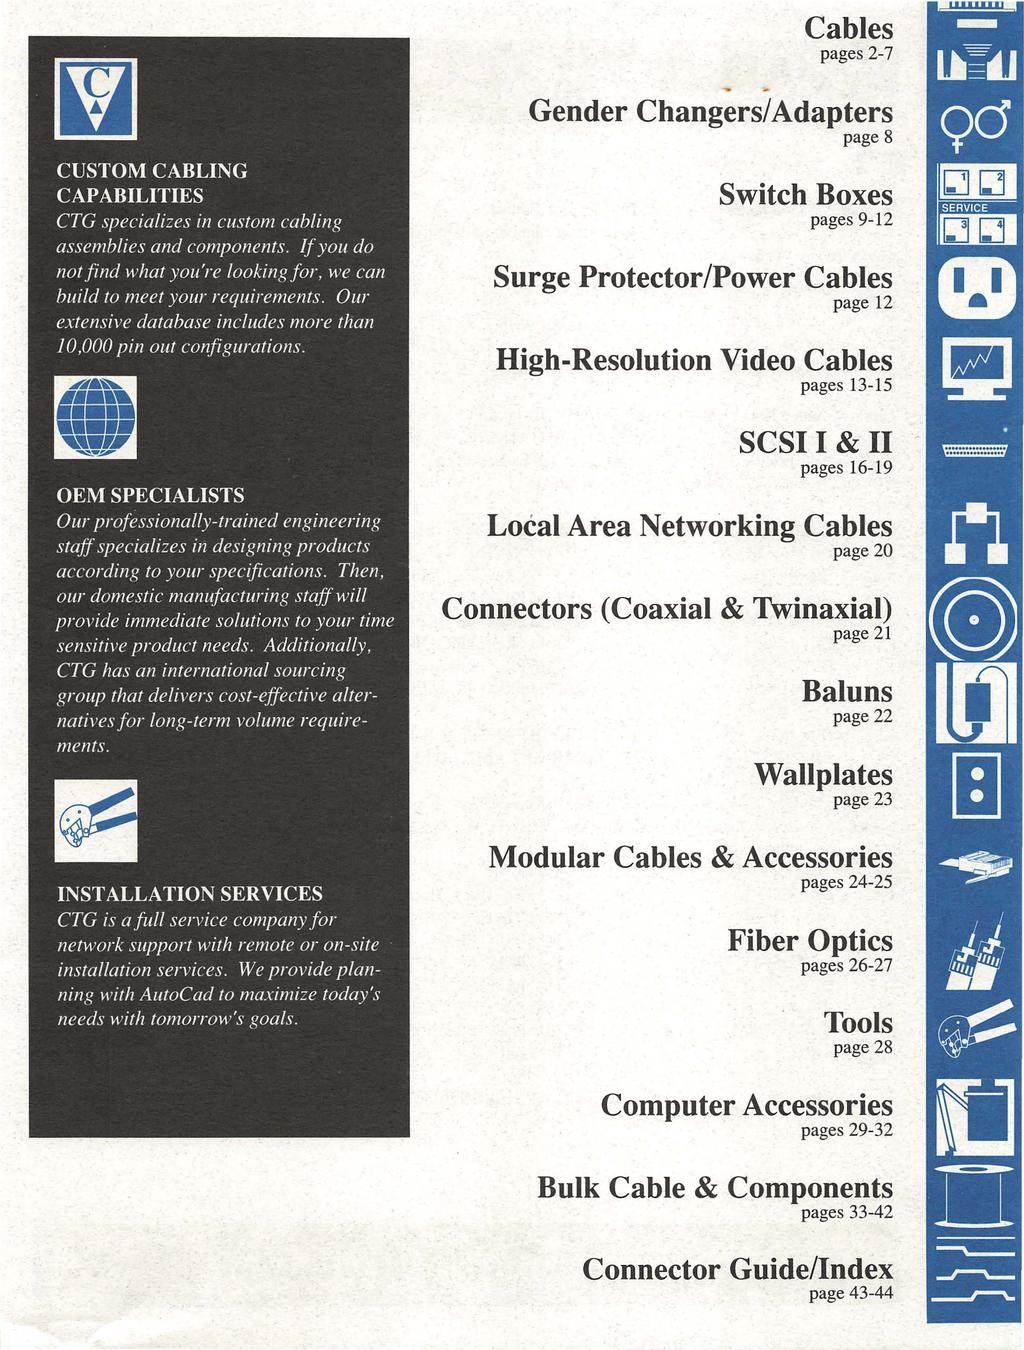 Cables pages 2-7 - Gender Changers/ Adapters page 8 Switch Boxes pages 9